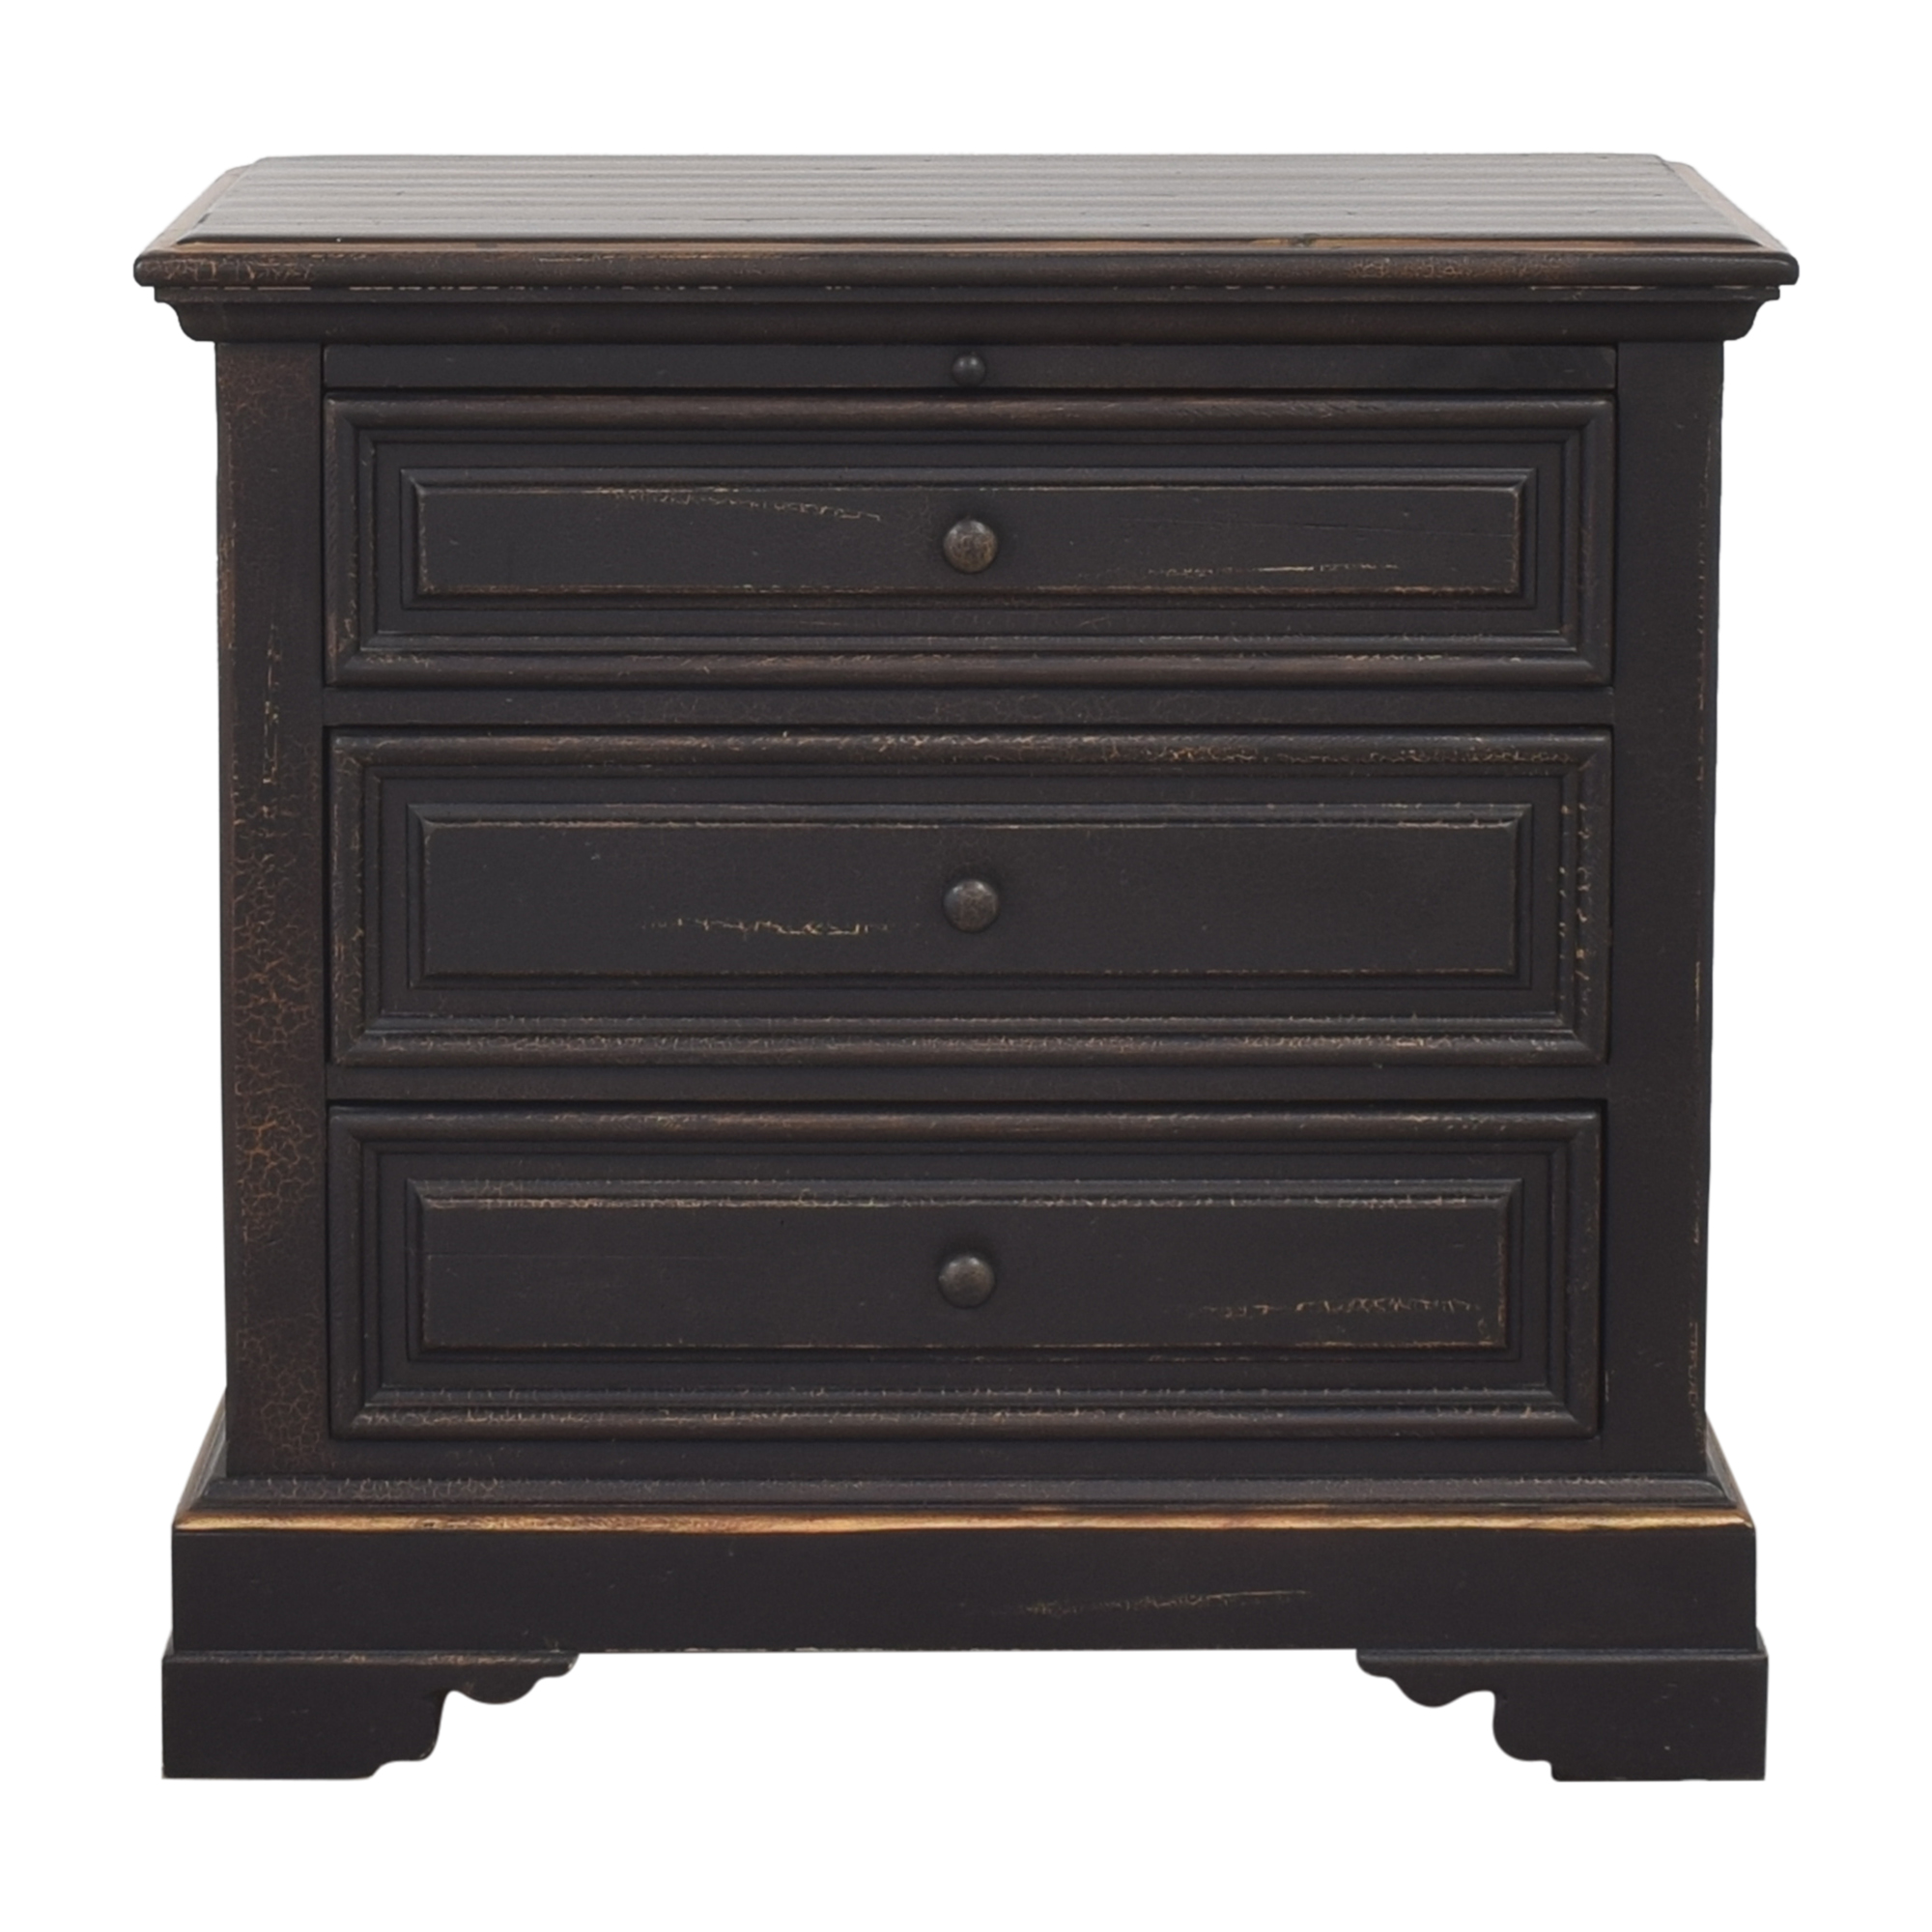 Drexel Heritage Drexel Heritage Three Drawer Nightstand discount